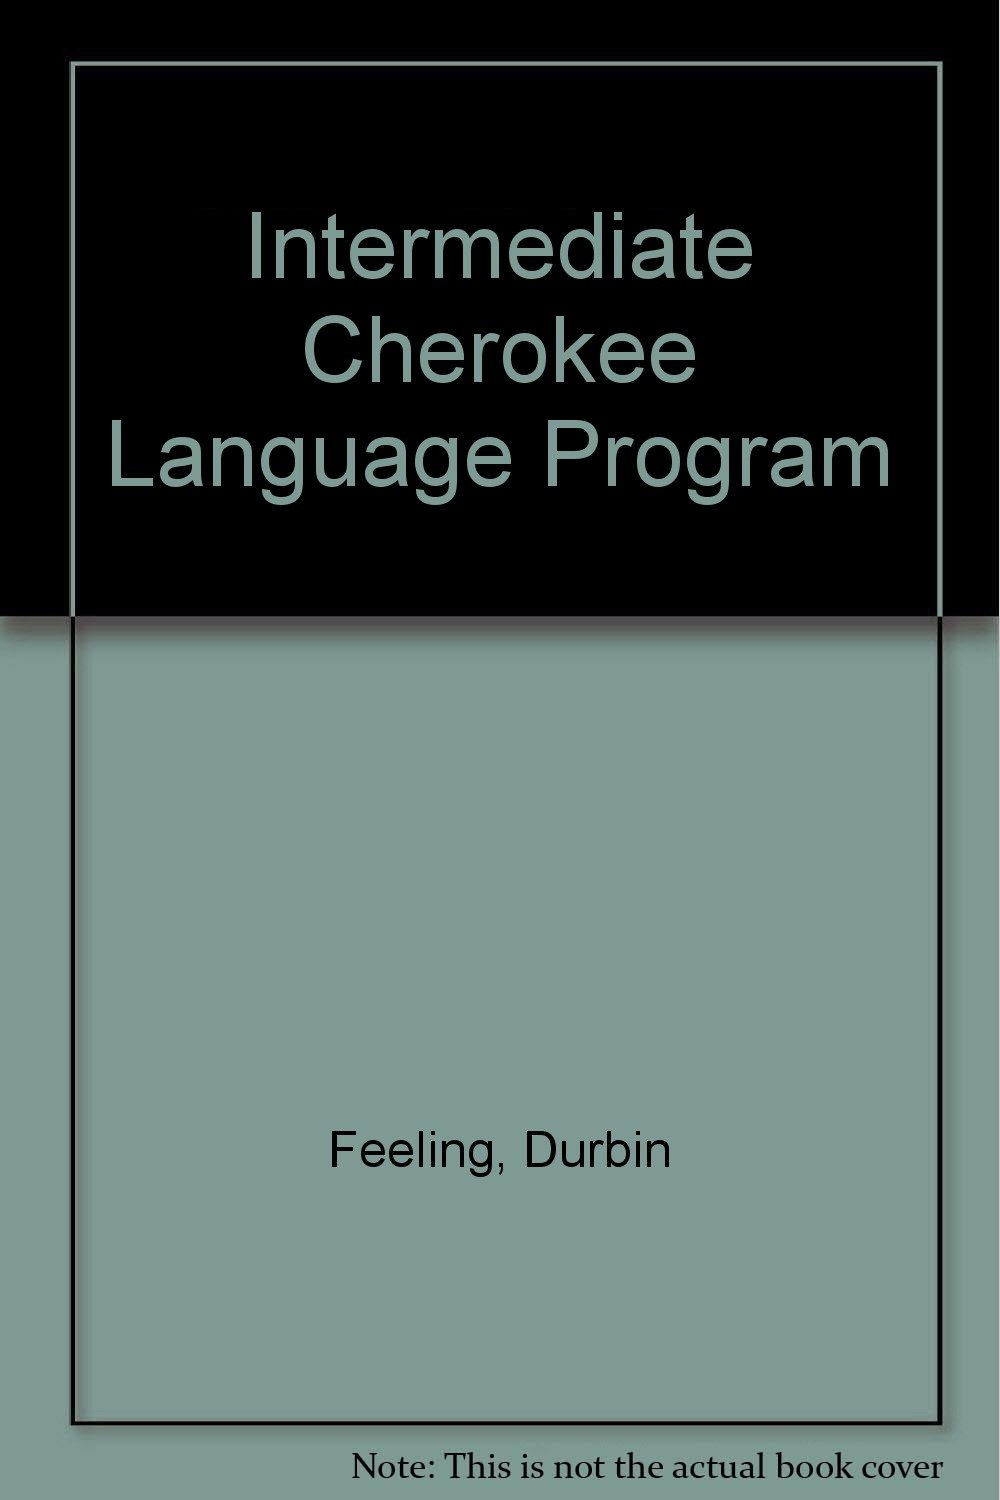 Intermediate Cherokee Language Program free download